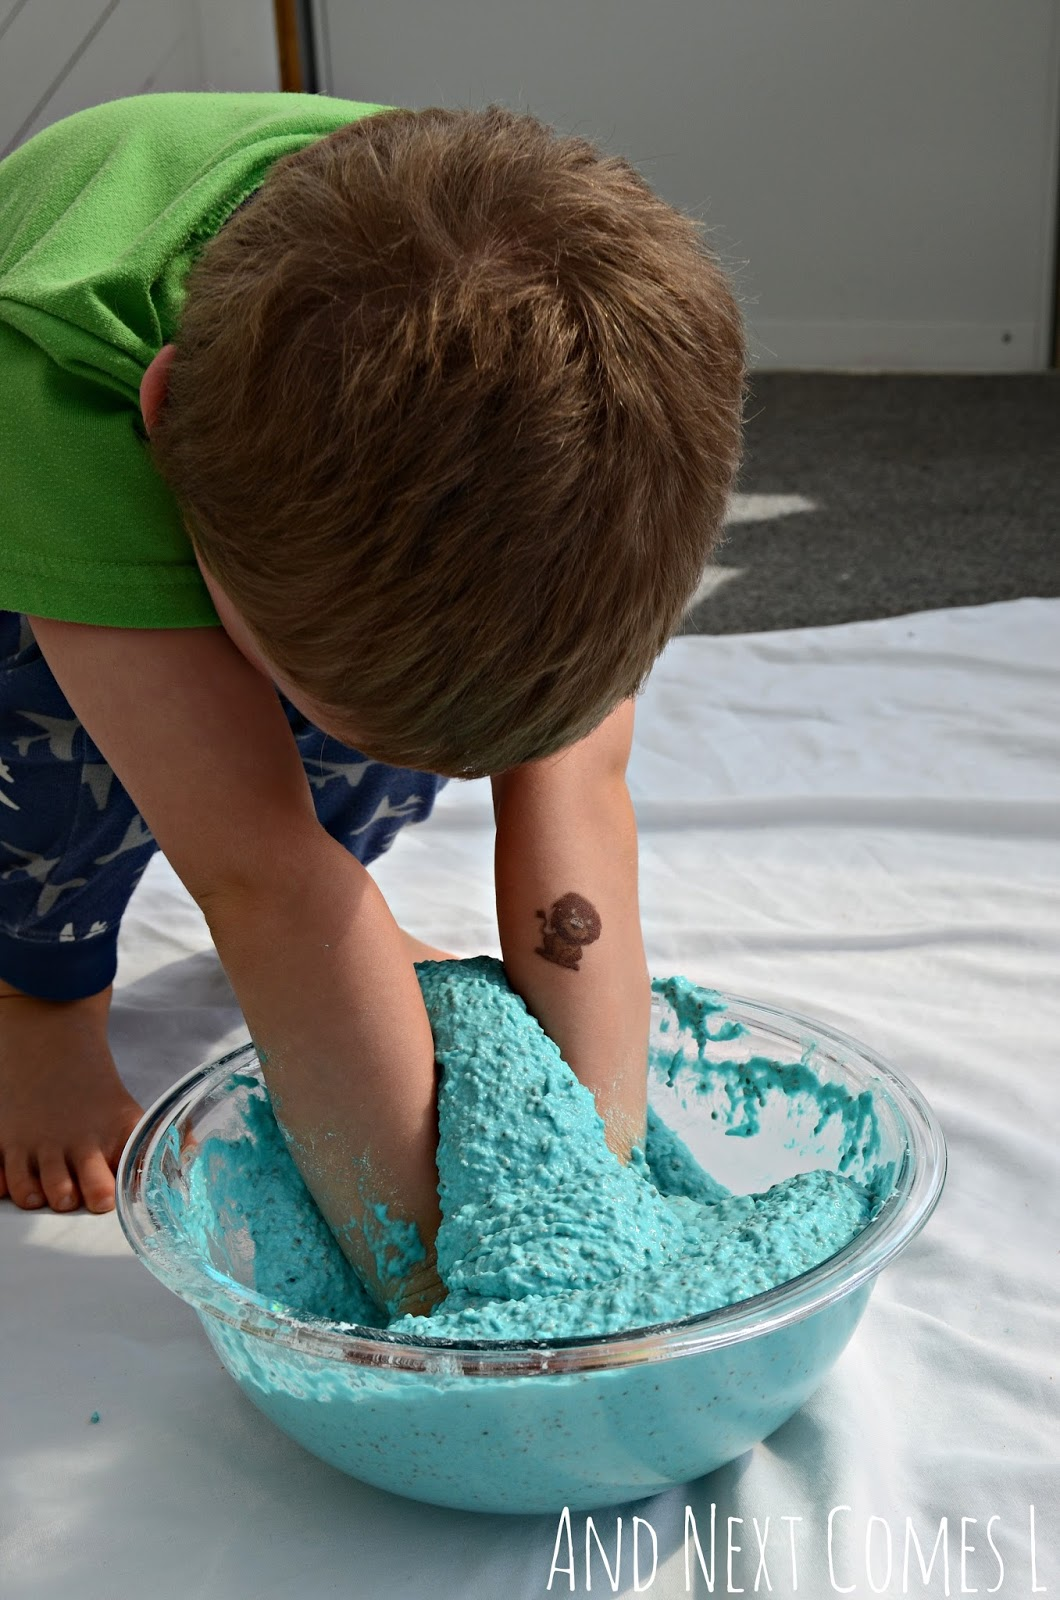 Play With Patterns Prints And Lots Of Accessories For: Edible Sludge Sensory Play